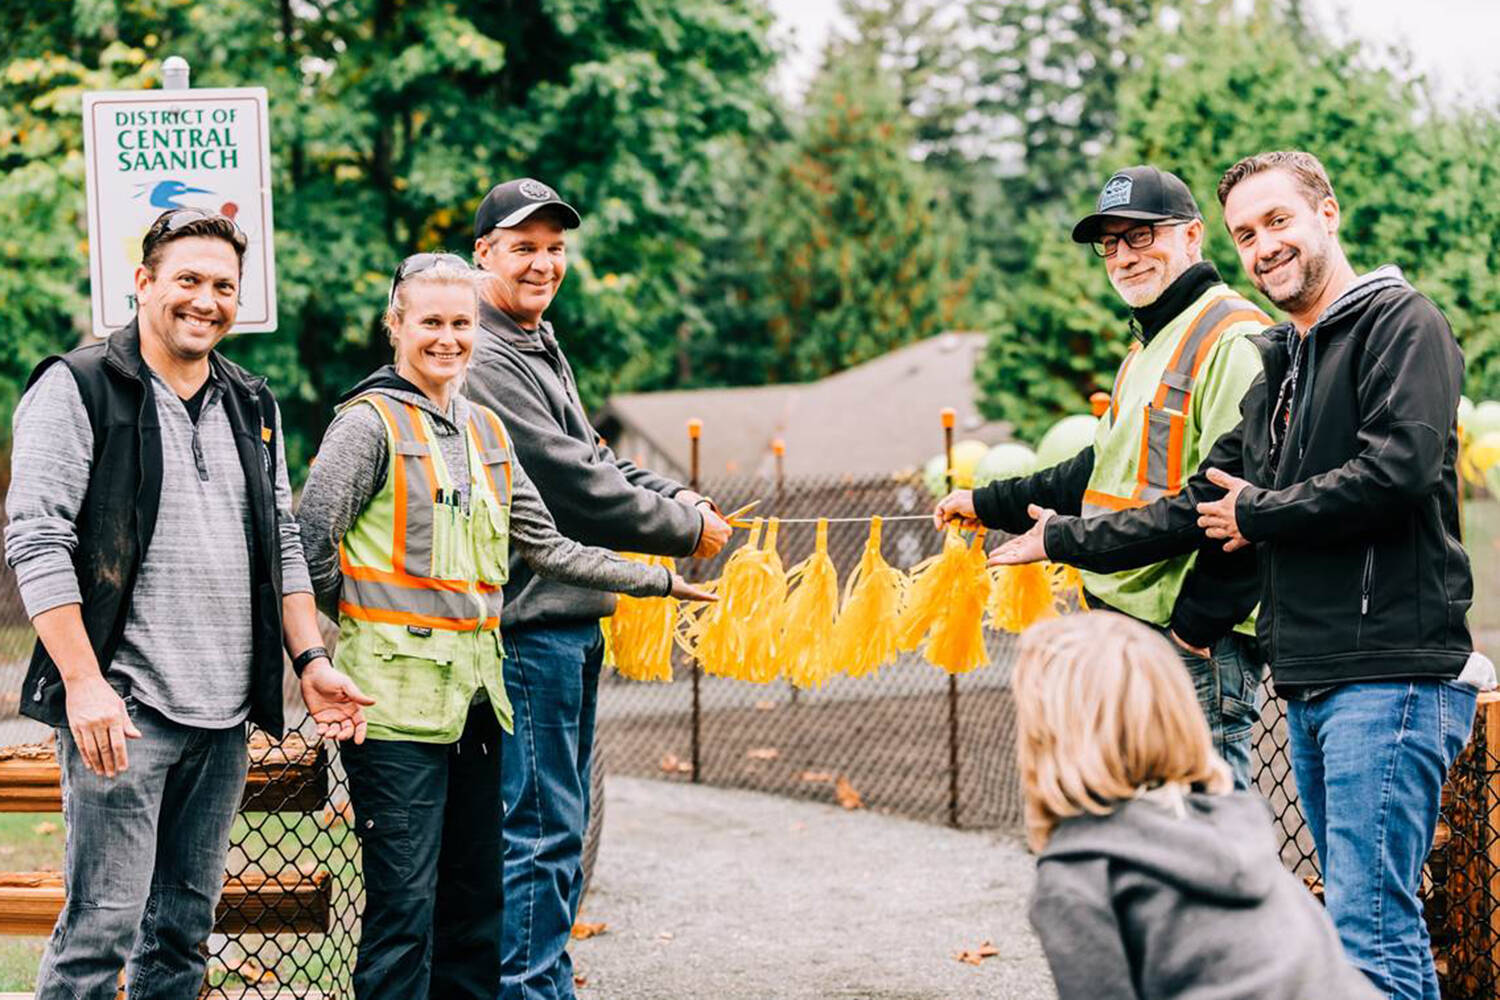 Mayor Ryan Windsor (right) was among Central Saanich officials during the opening of Tanner Park Sept. 29. (Photo courtesy of the District of Central Saanich)